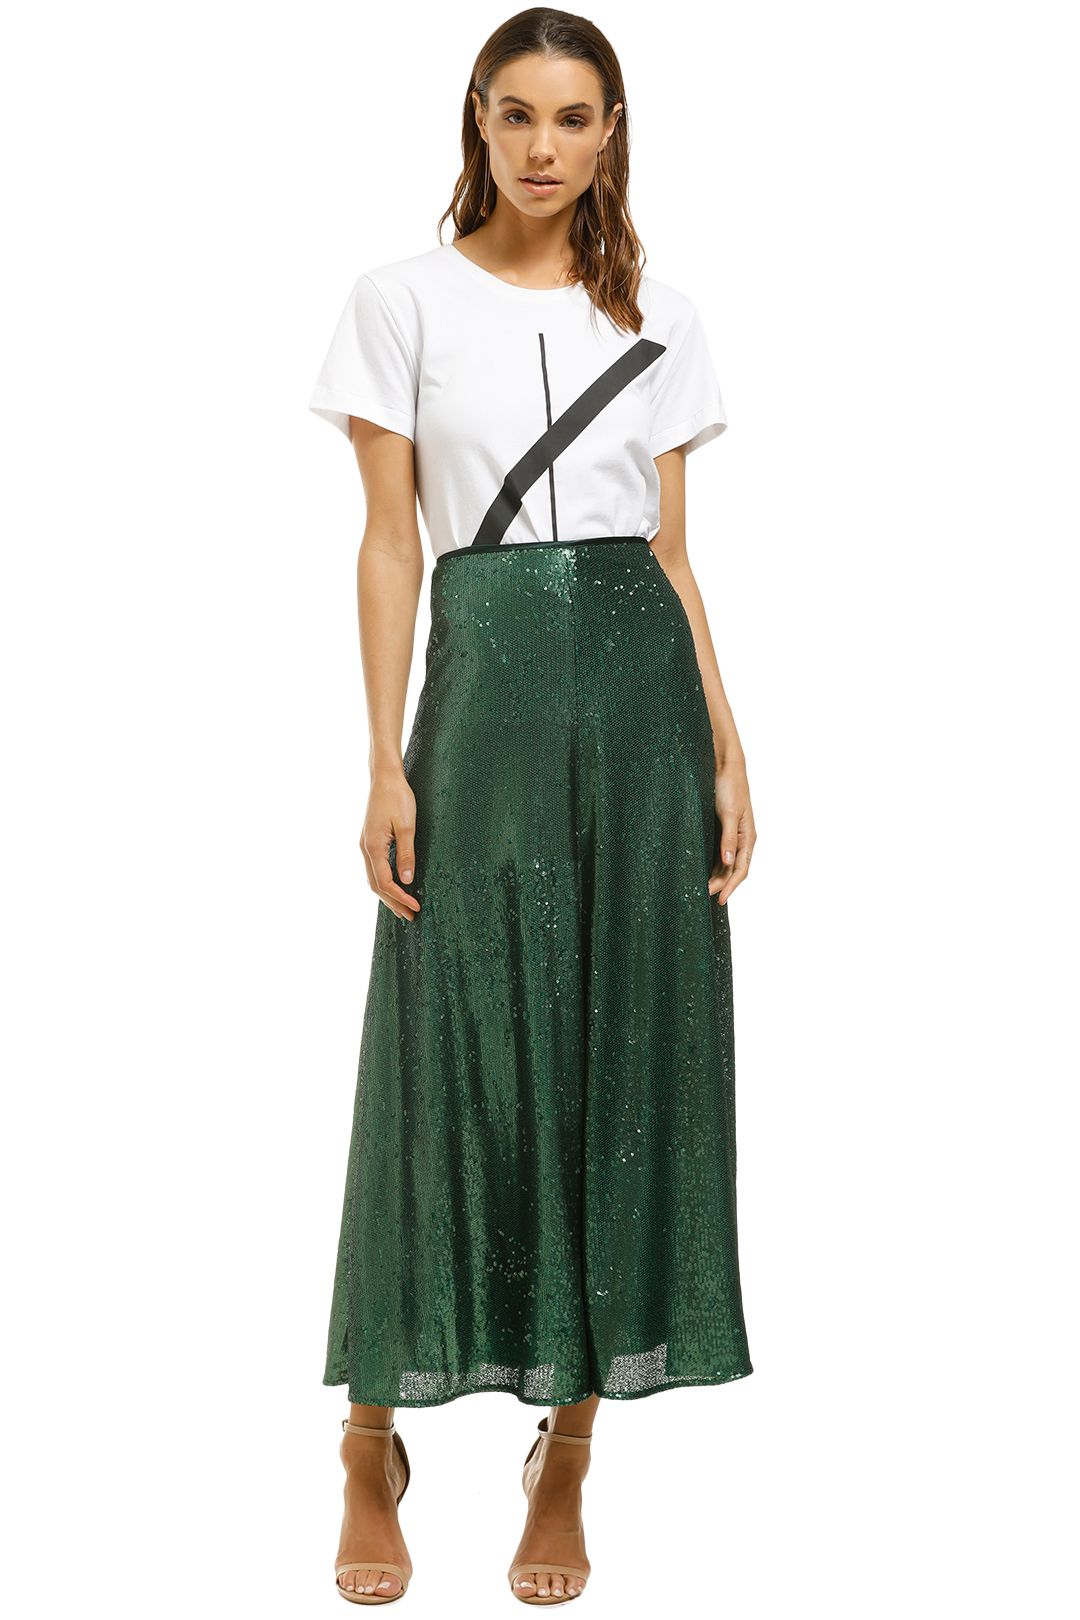 Kate-Sylvester-Odell-Skirt-Green-Front